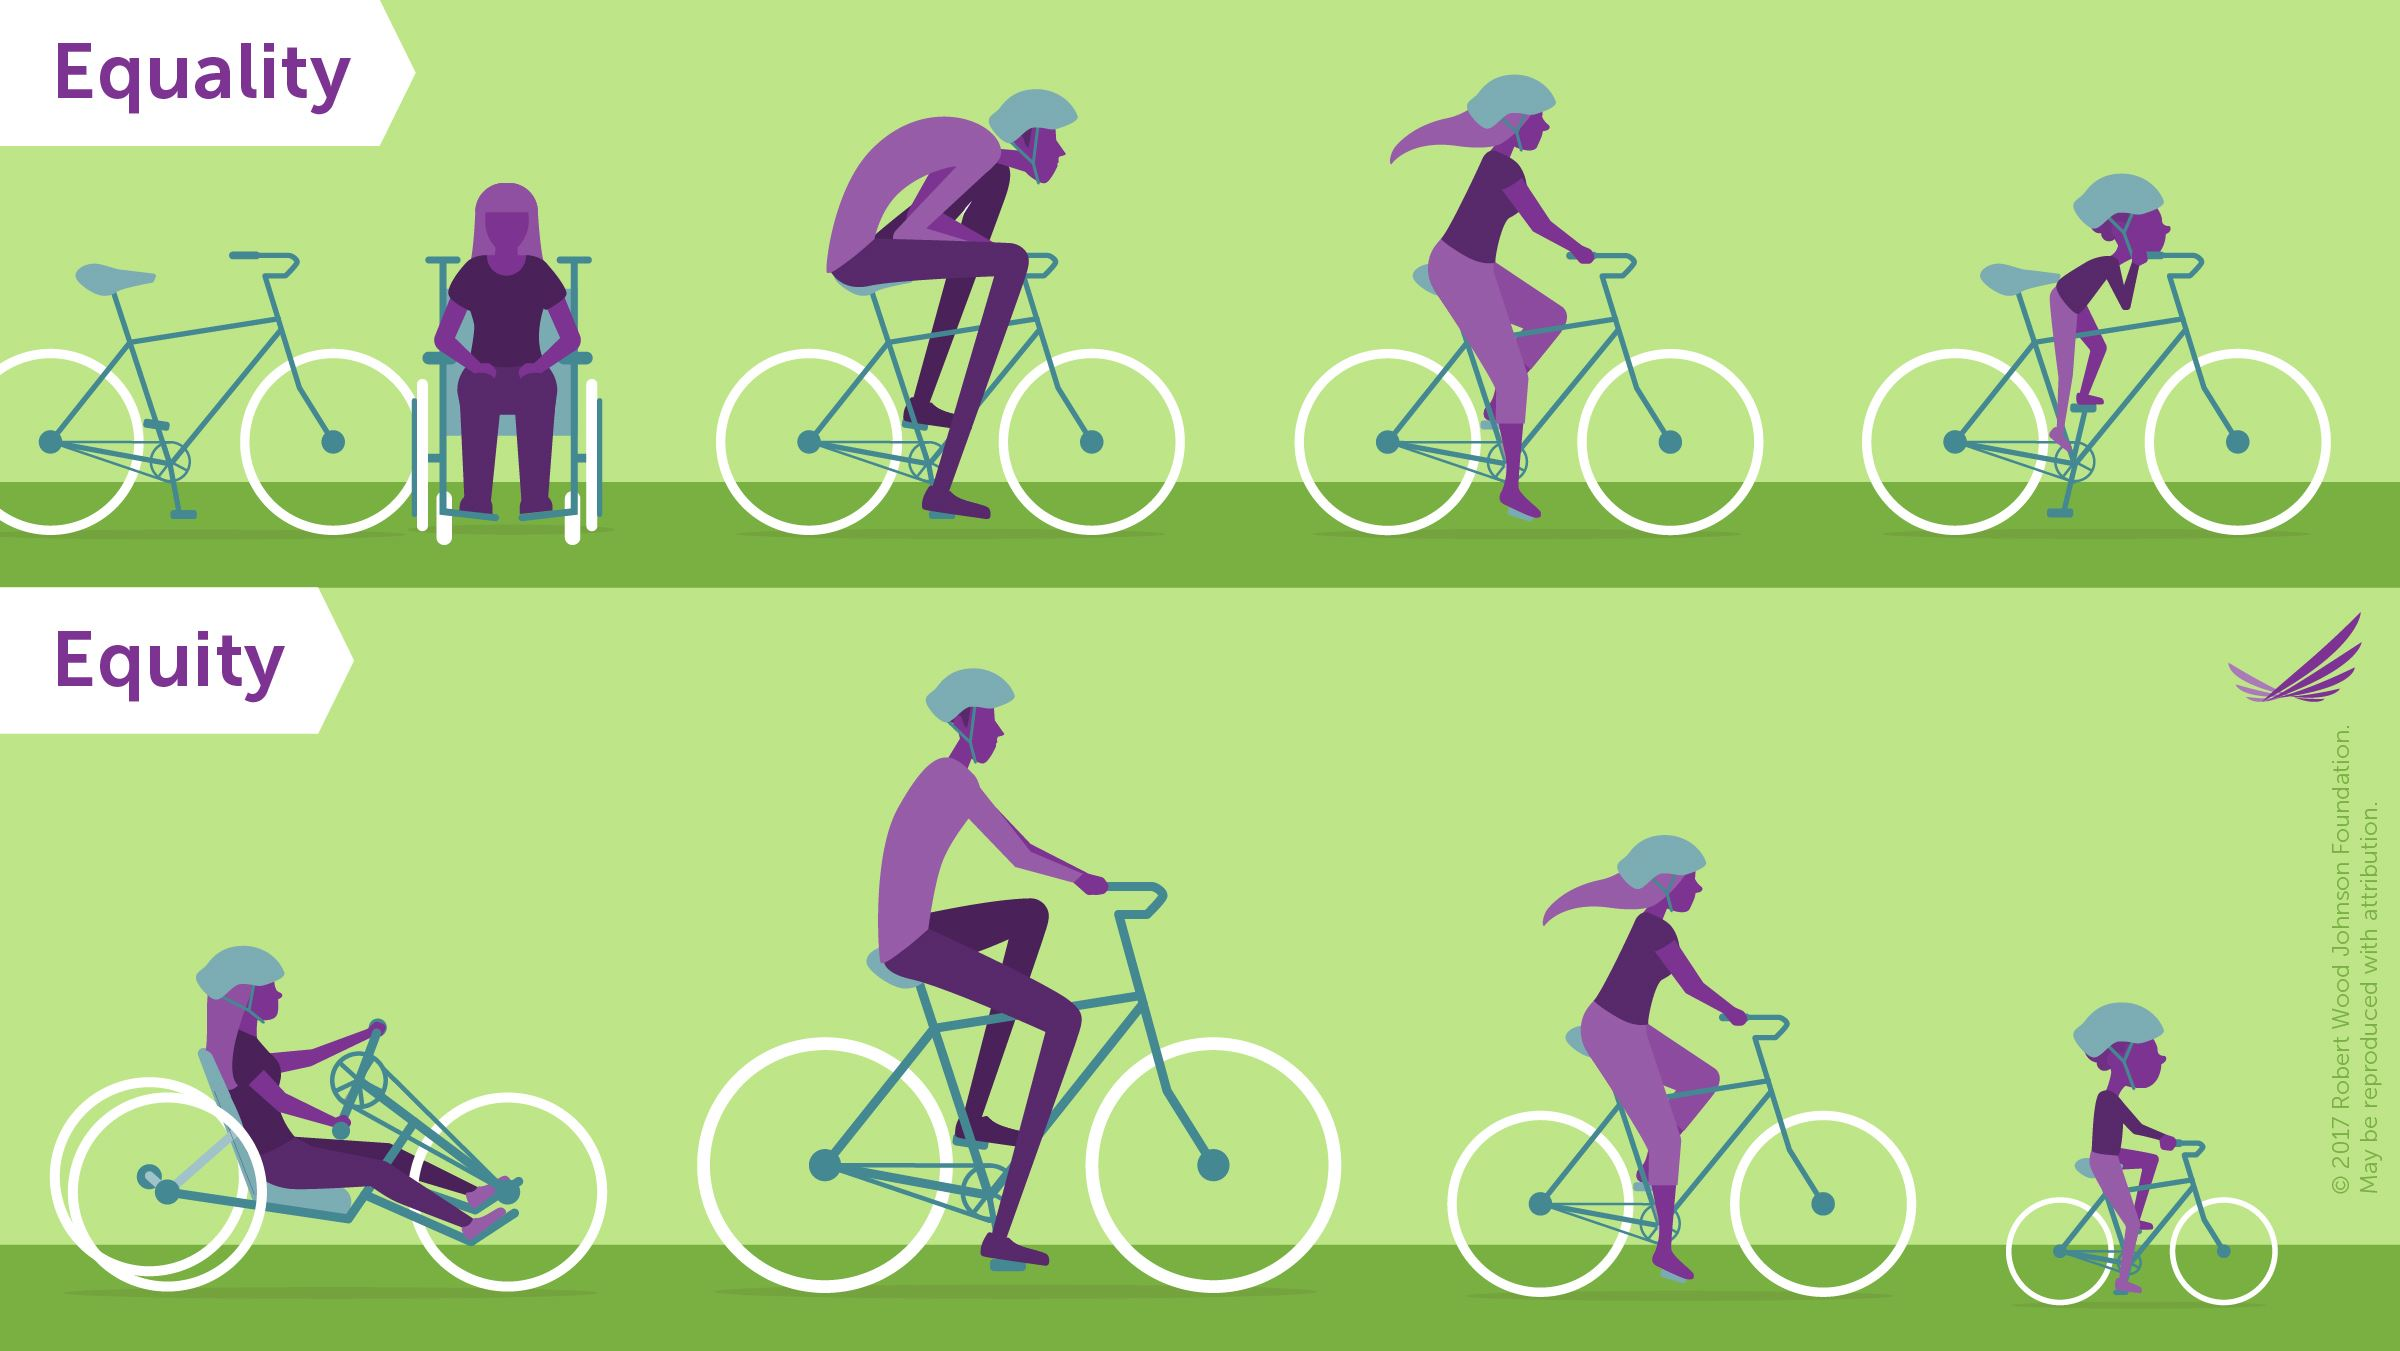 RWJF_bikes_equality_equity_PURPLE